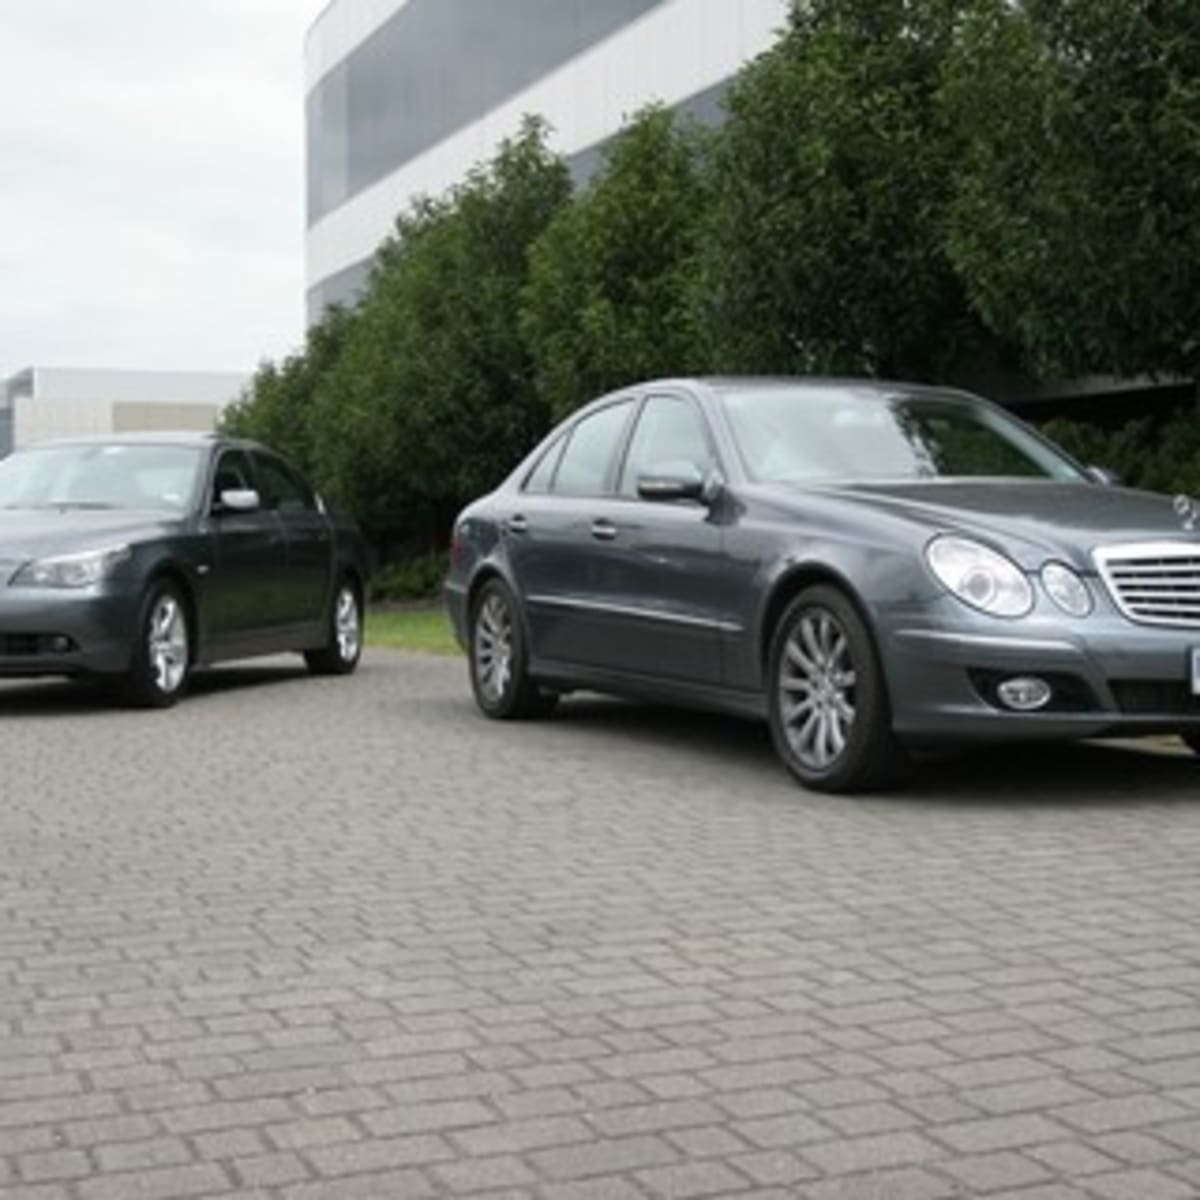 BMW 530d vs Mercedes Benz E280 CDI | CarAdvice